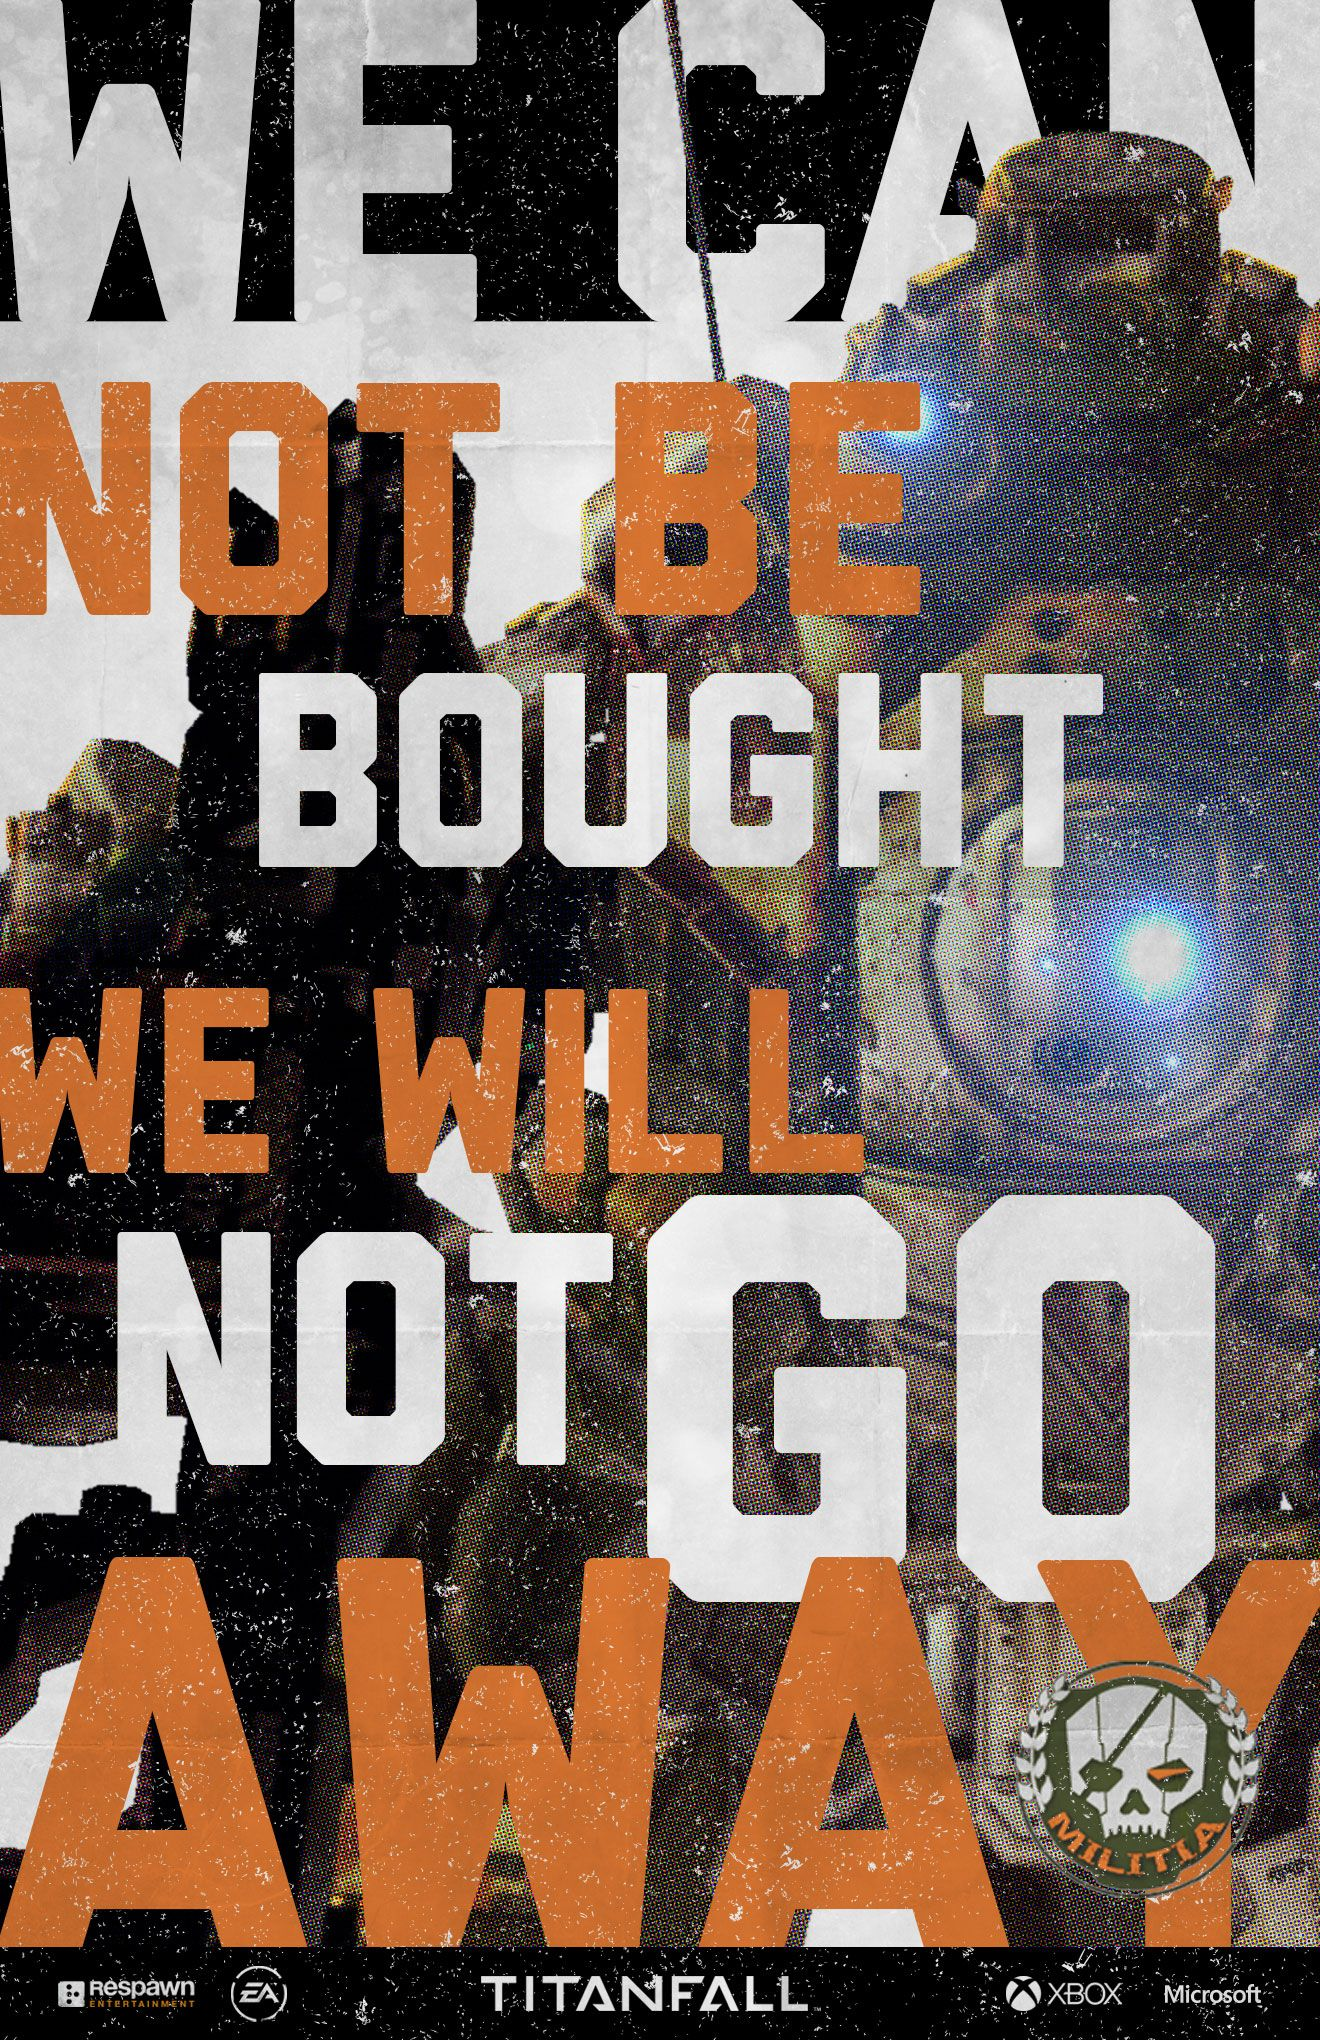 I'm recruiting my friends to Titanfall. You can too. Make your own poster and enlist today. http://pages.engage.xbox.com/Titanfall/RecruitmentCenter/MILITIA_v02-3_2